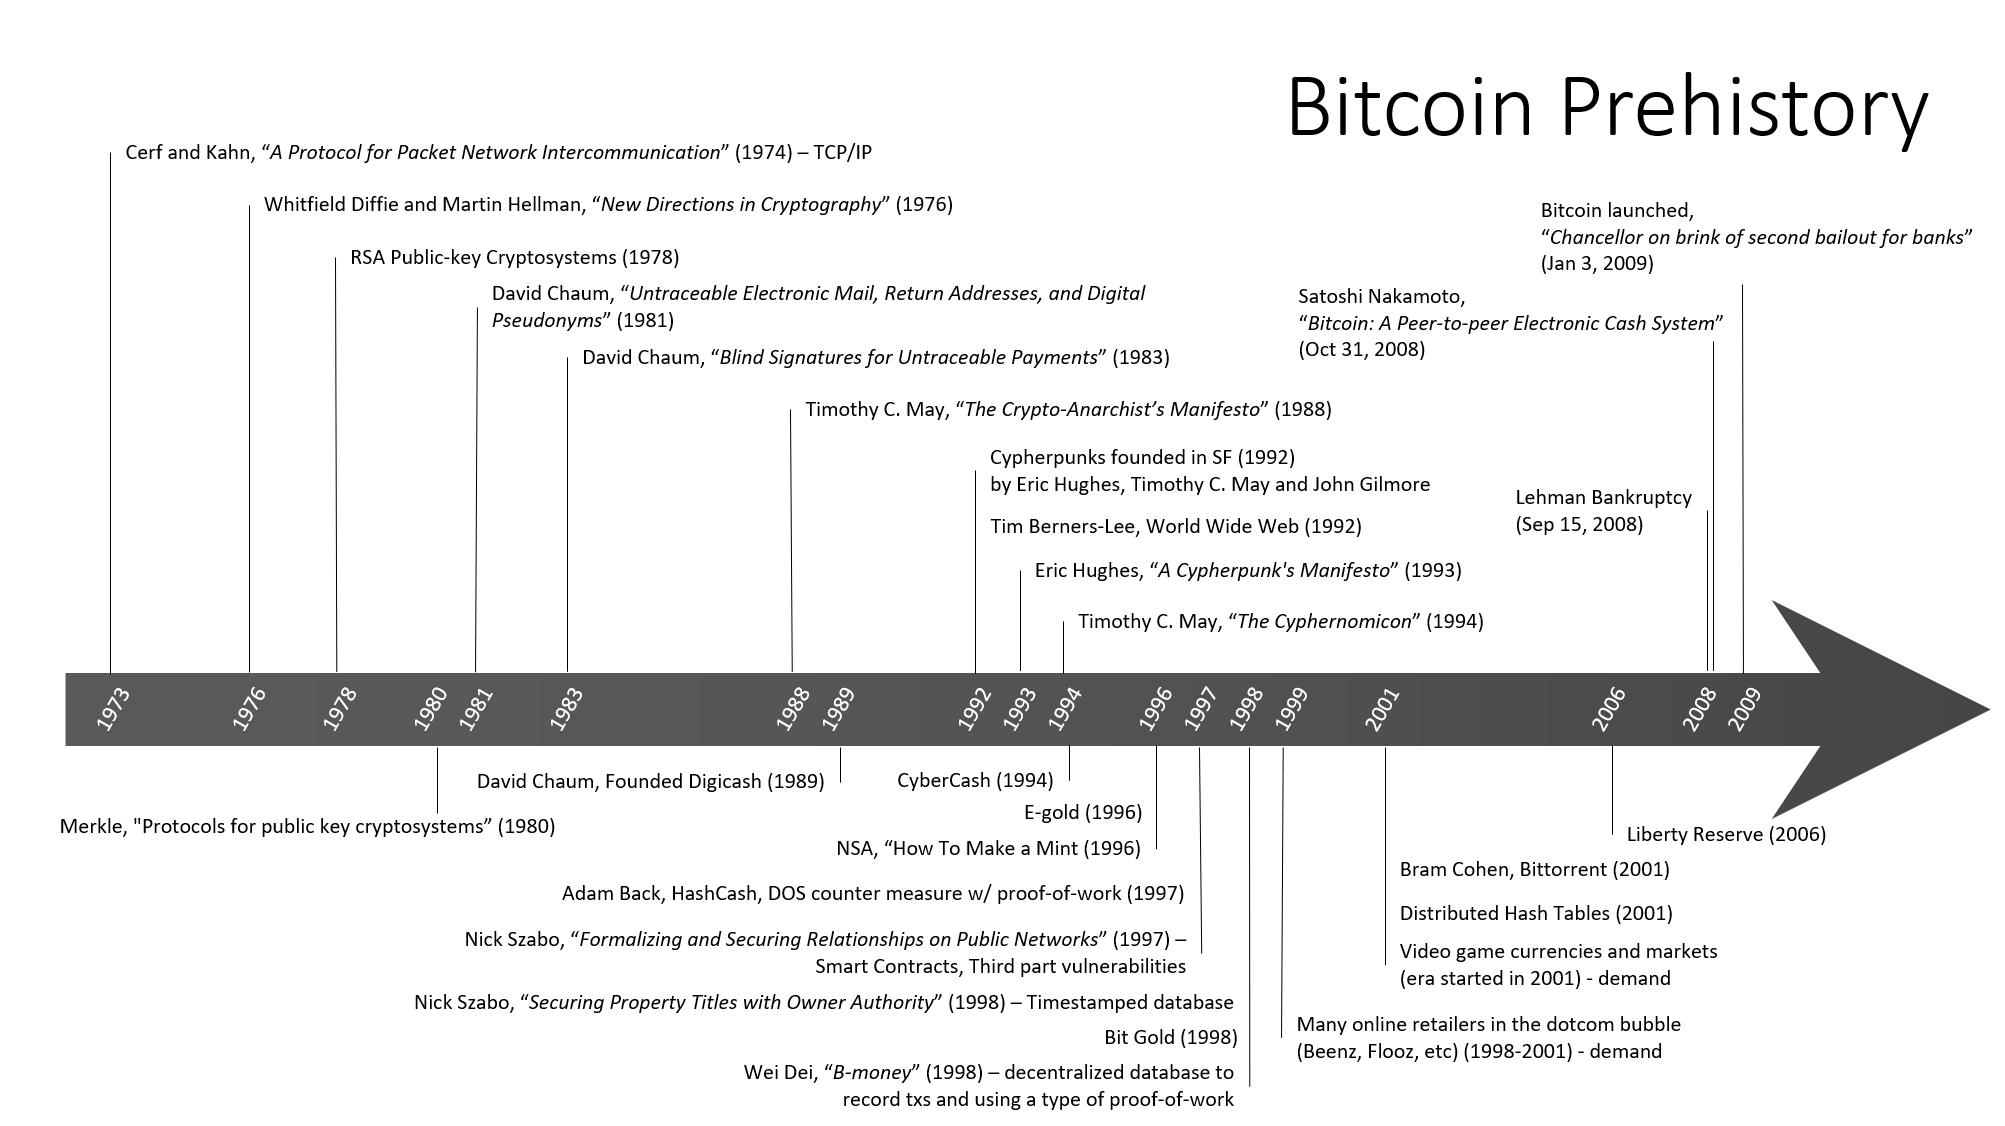 A growing assortment of knowledge related to the history of Bitcoin.